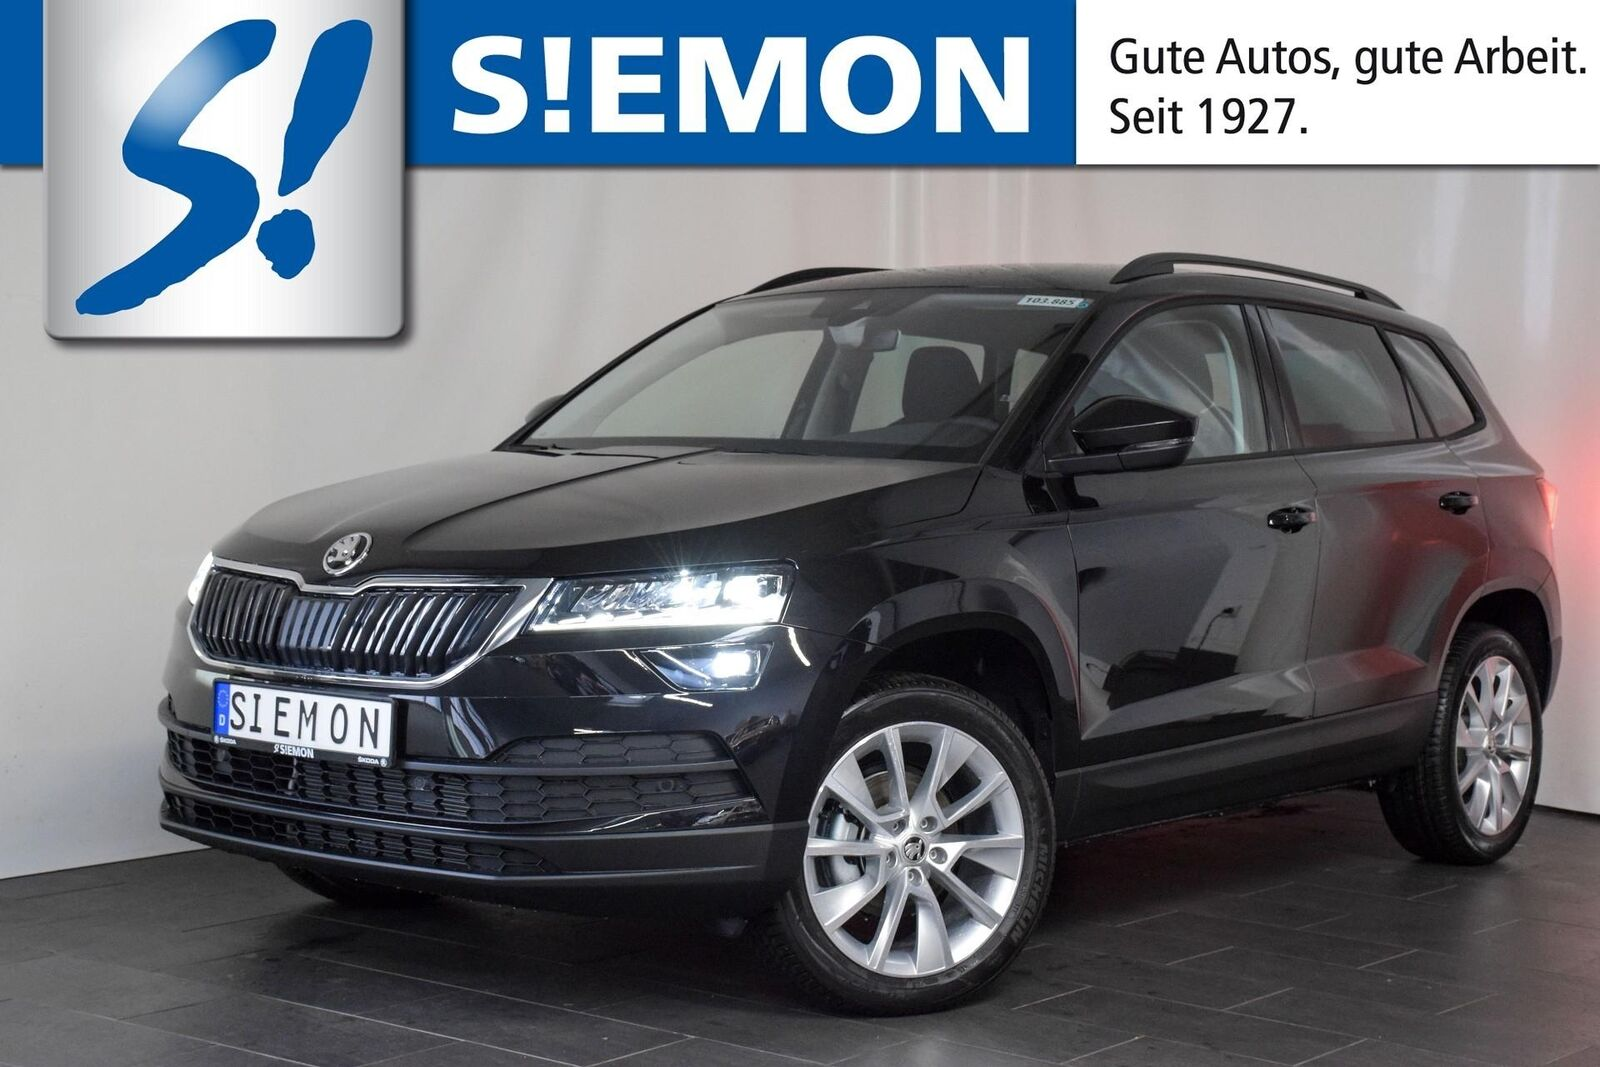 skoda karoq 1 5 tsi dsg style navi led acc ahk shz deine. Black Bedroom Furniture Sets. Home Design Ideas